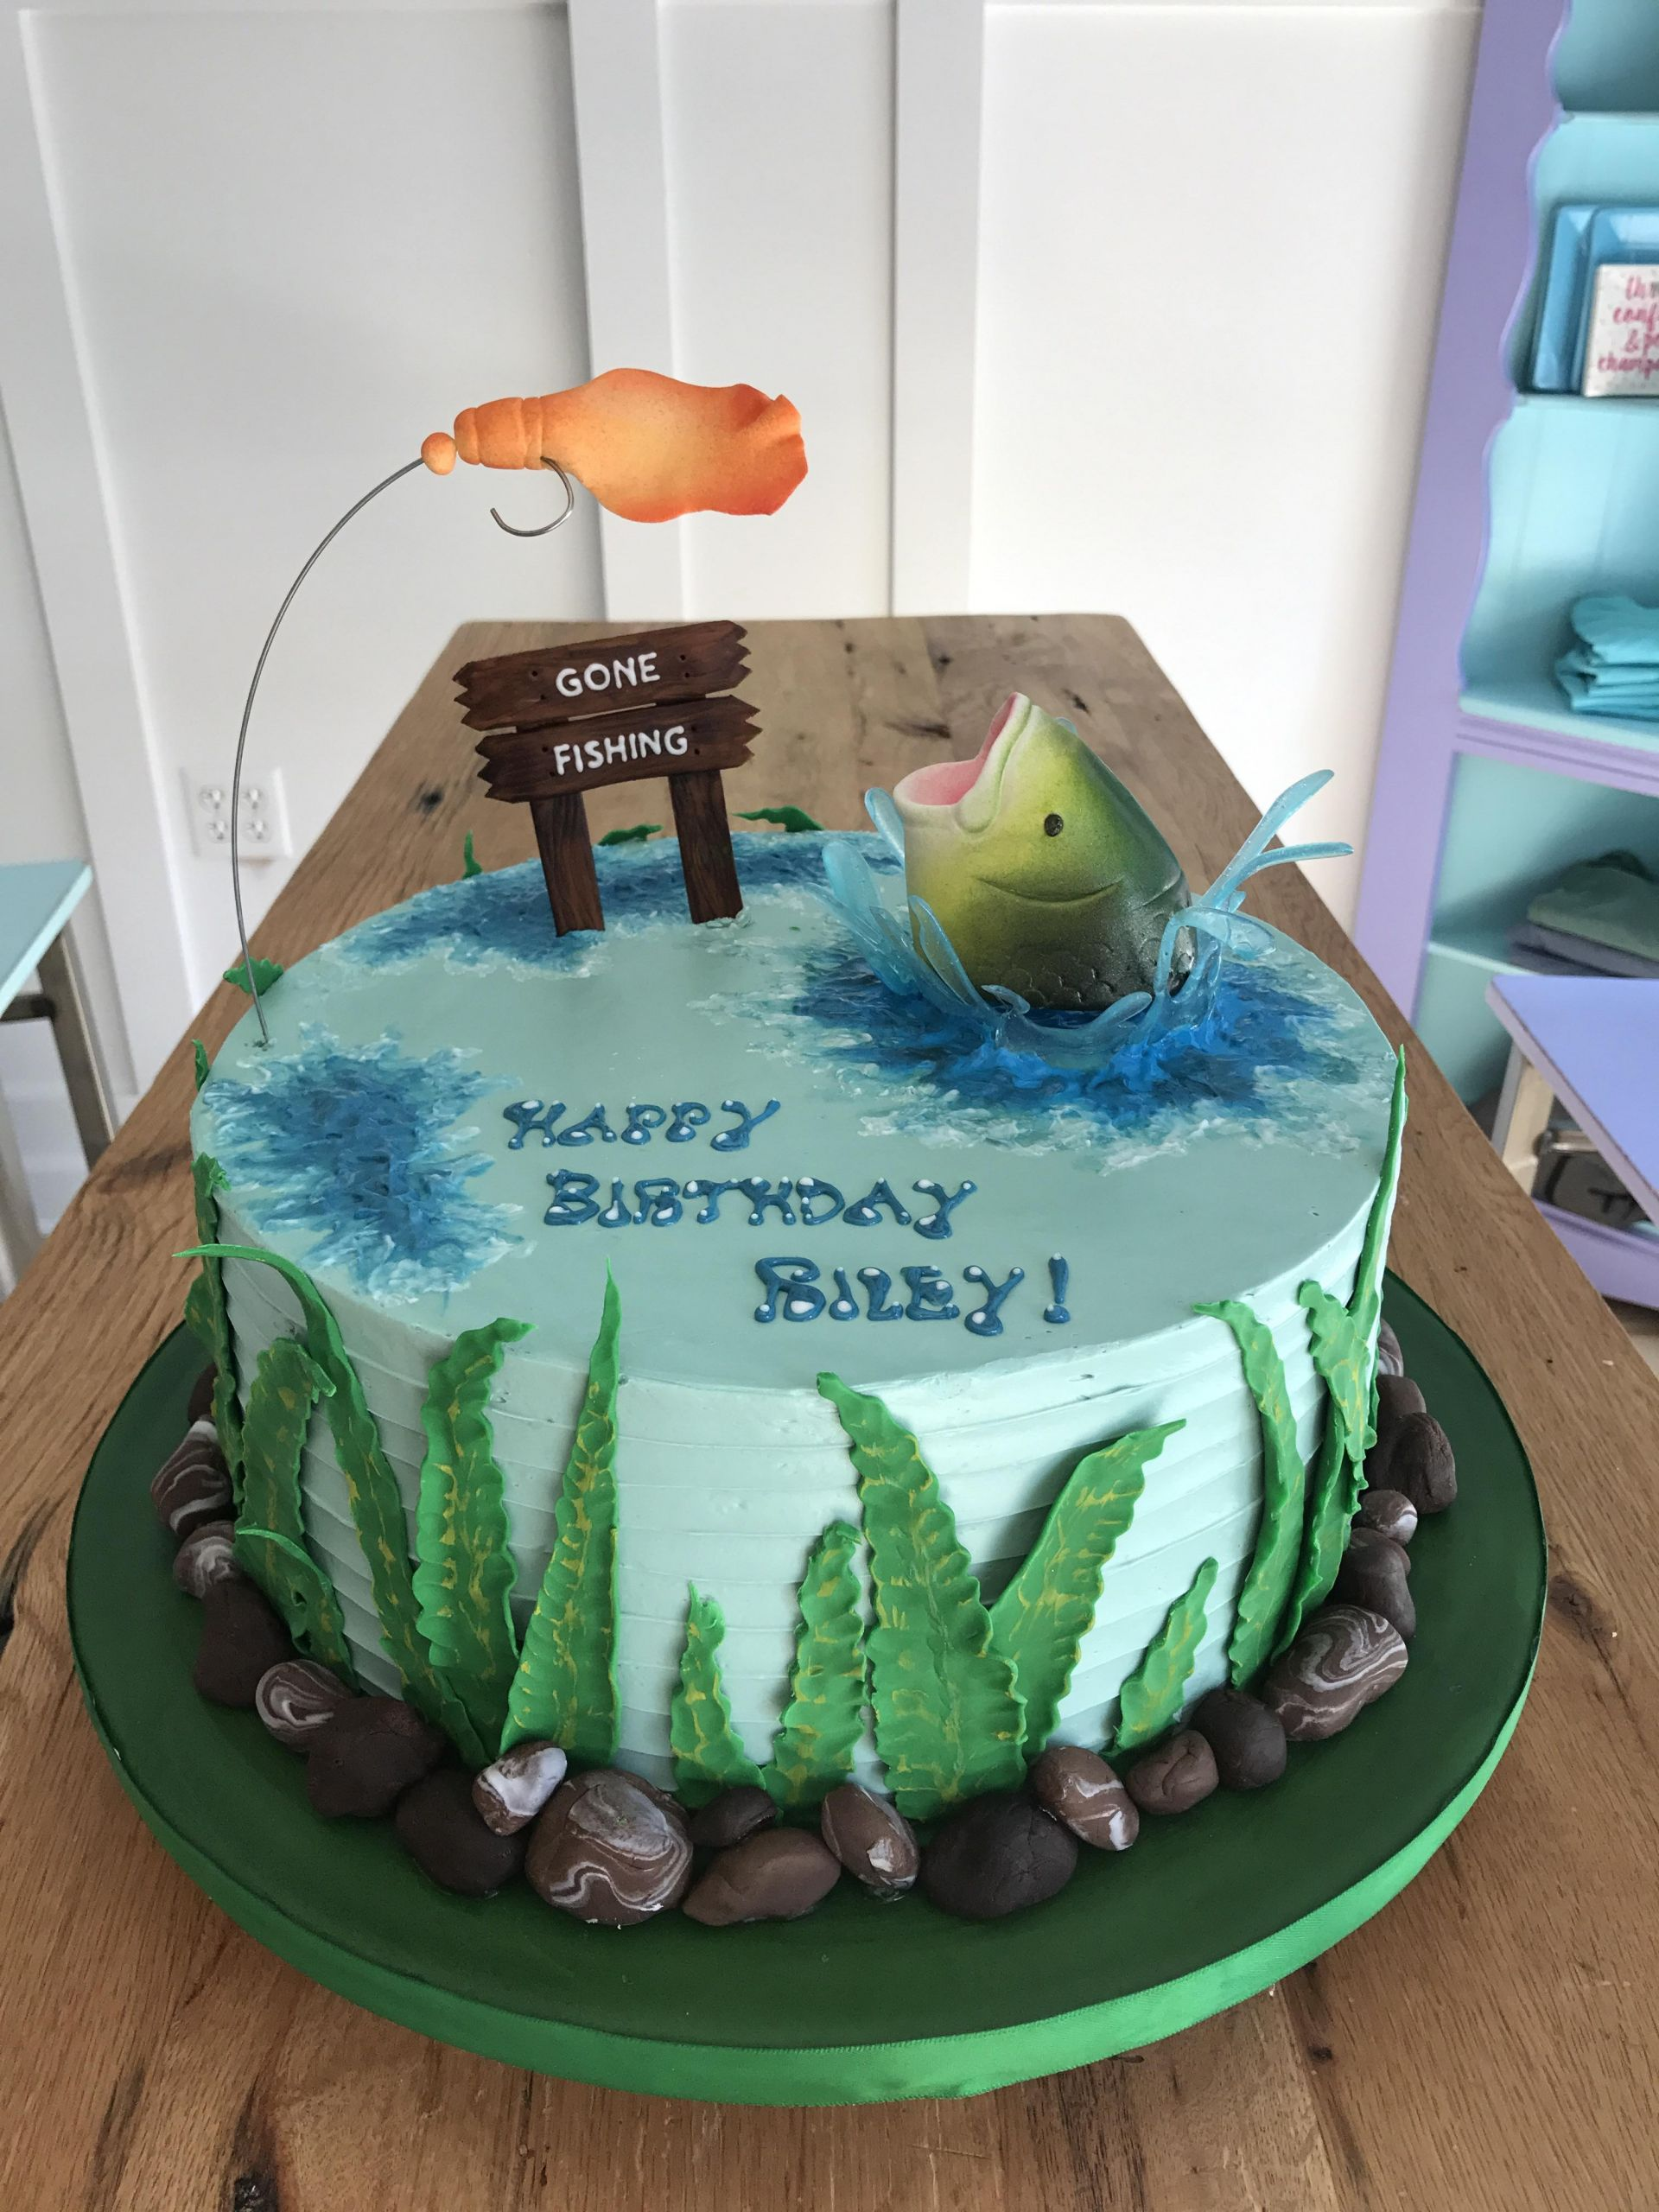 Fishing Birthday Cakes  overview for proudfkl21